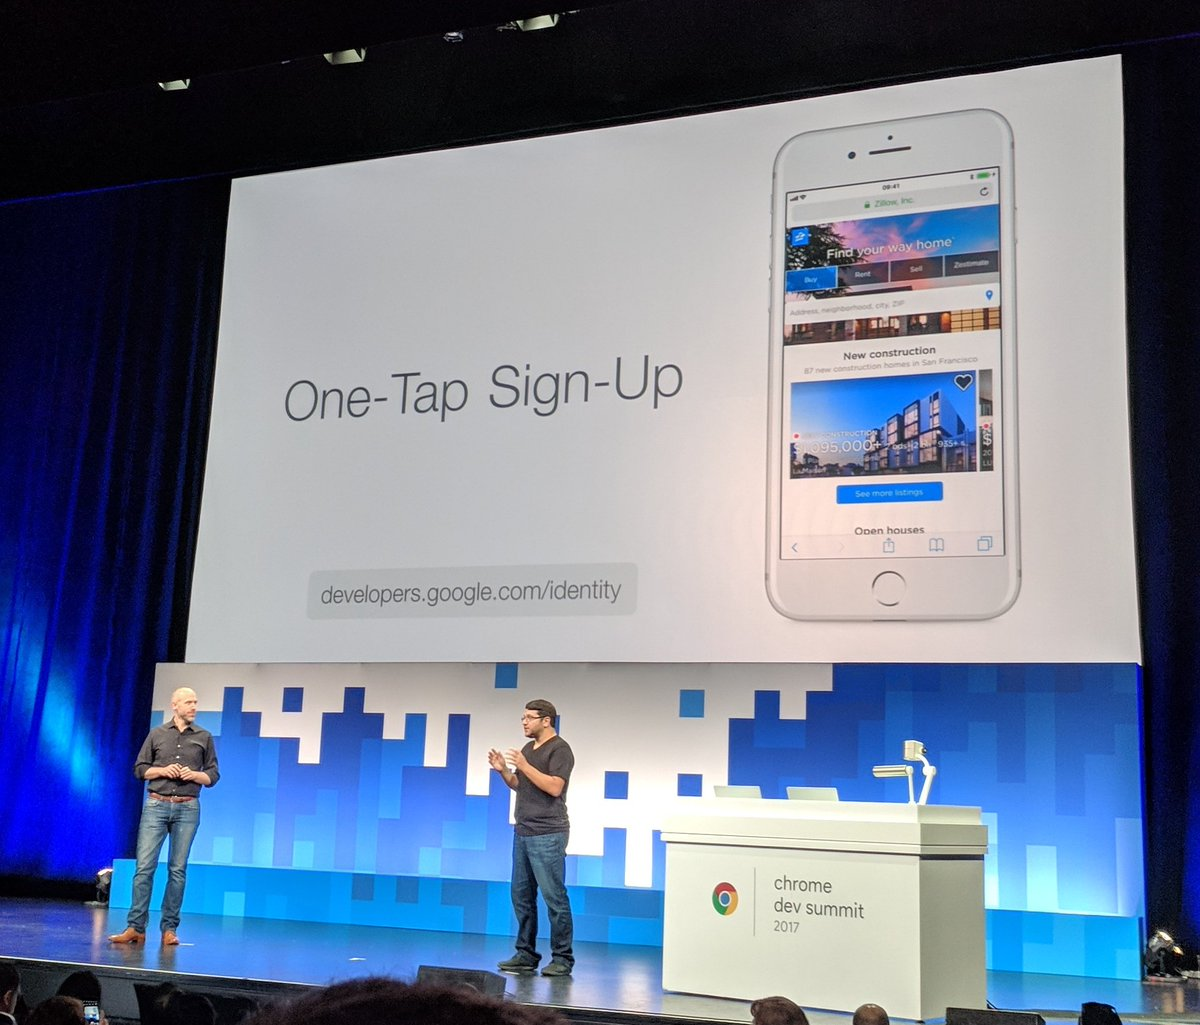 Finally unified sign-in experience for any auth provider! Single click to login. Awesome! #ChromeDevSummit https://t.co/L3QzIAb4Lg